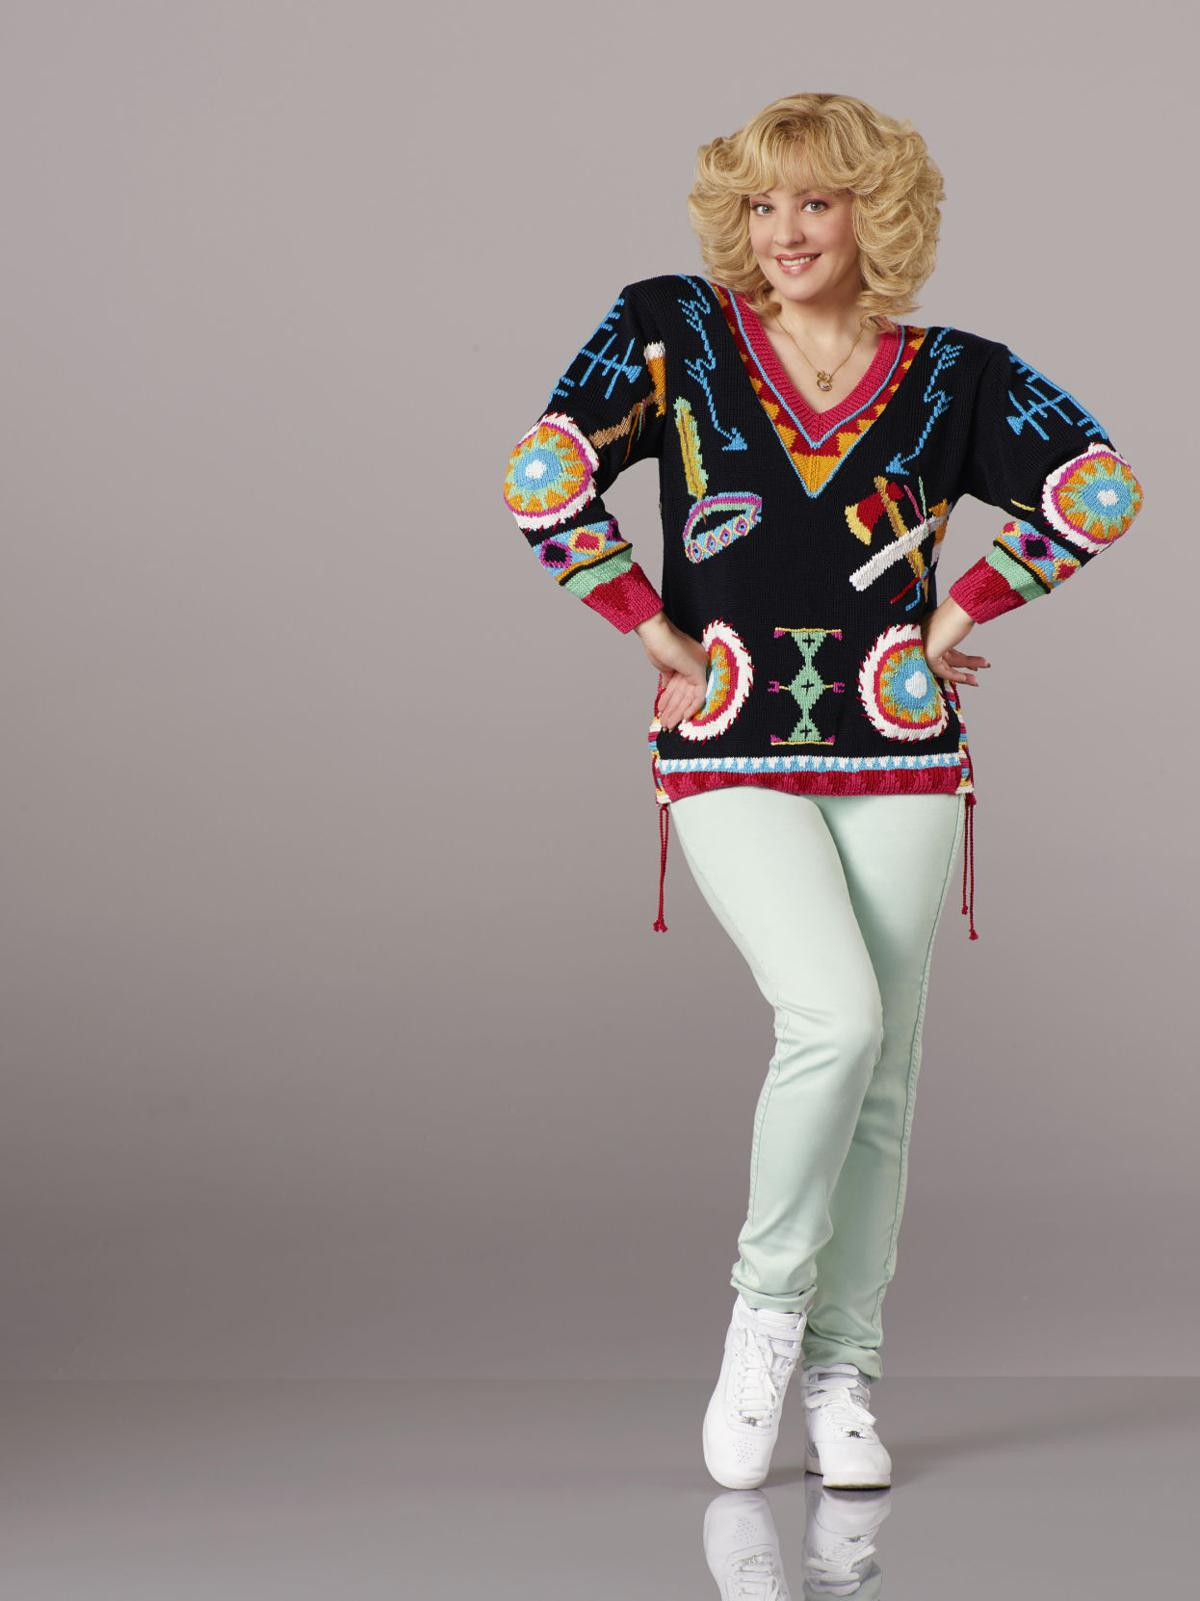 Finding Mom Its All In The Wig Says Wendi Mclendon-Covey -4225